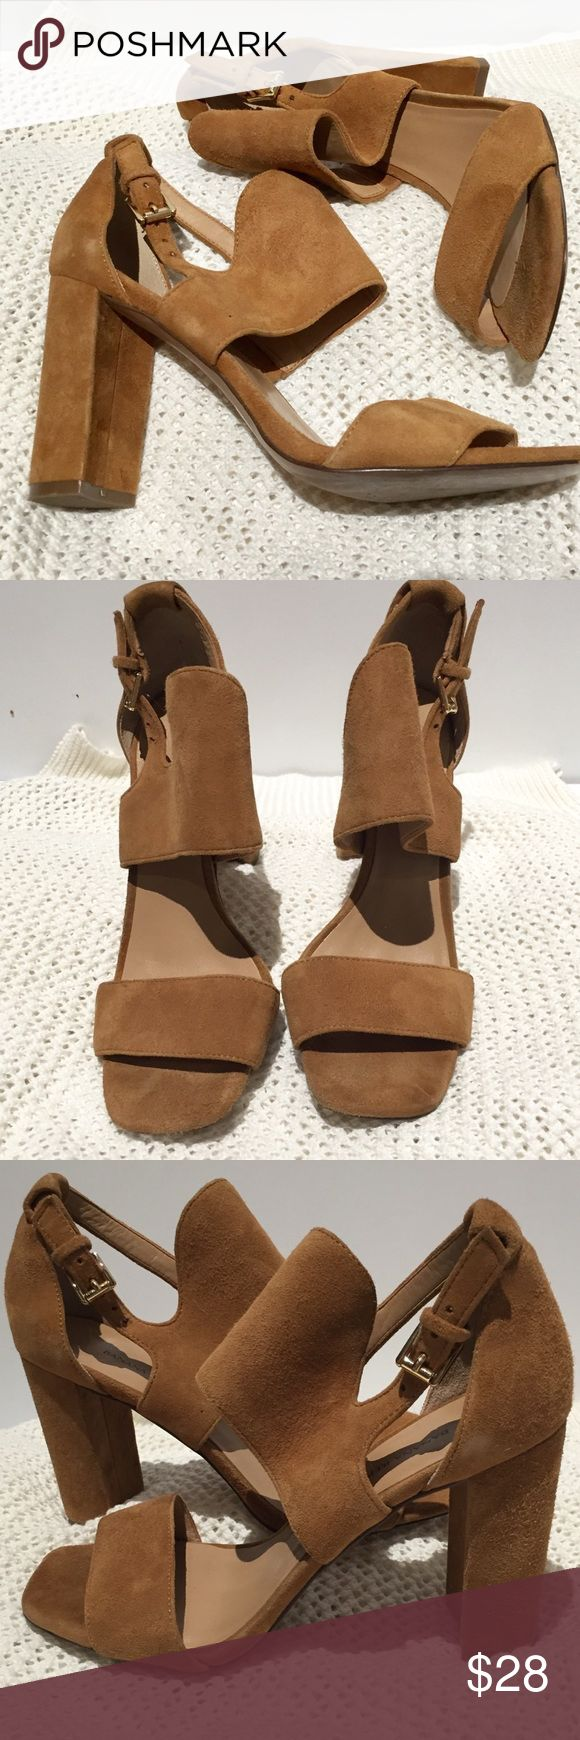 Camel suede heeled sandals from B. Republic Gorgeous heeled sandals from Banana Republic. Overall in excellent condition with some minor scuffs. See pics for tiny black mark on front of left shoe and slight suede discoloration on side of right shoe. The fading in the suede on right can be fixed by brushing the suede. Toe box area also shoes very minor wear from foot imprint but it's truly barely noticeable. I've worn these for work and out and they are wonderful! Thy have been cleaned and…